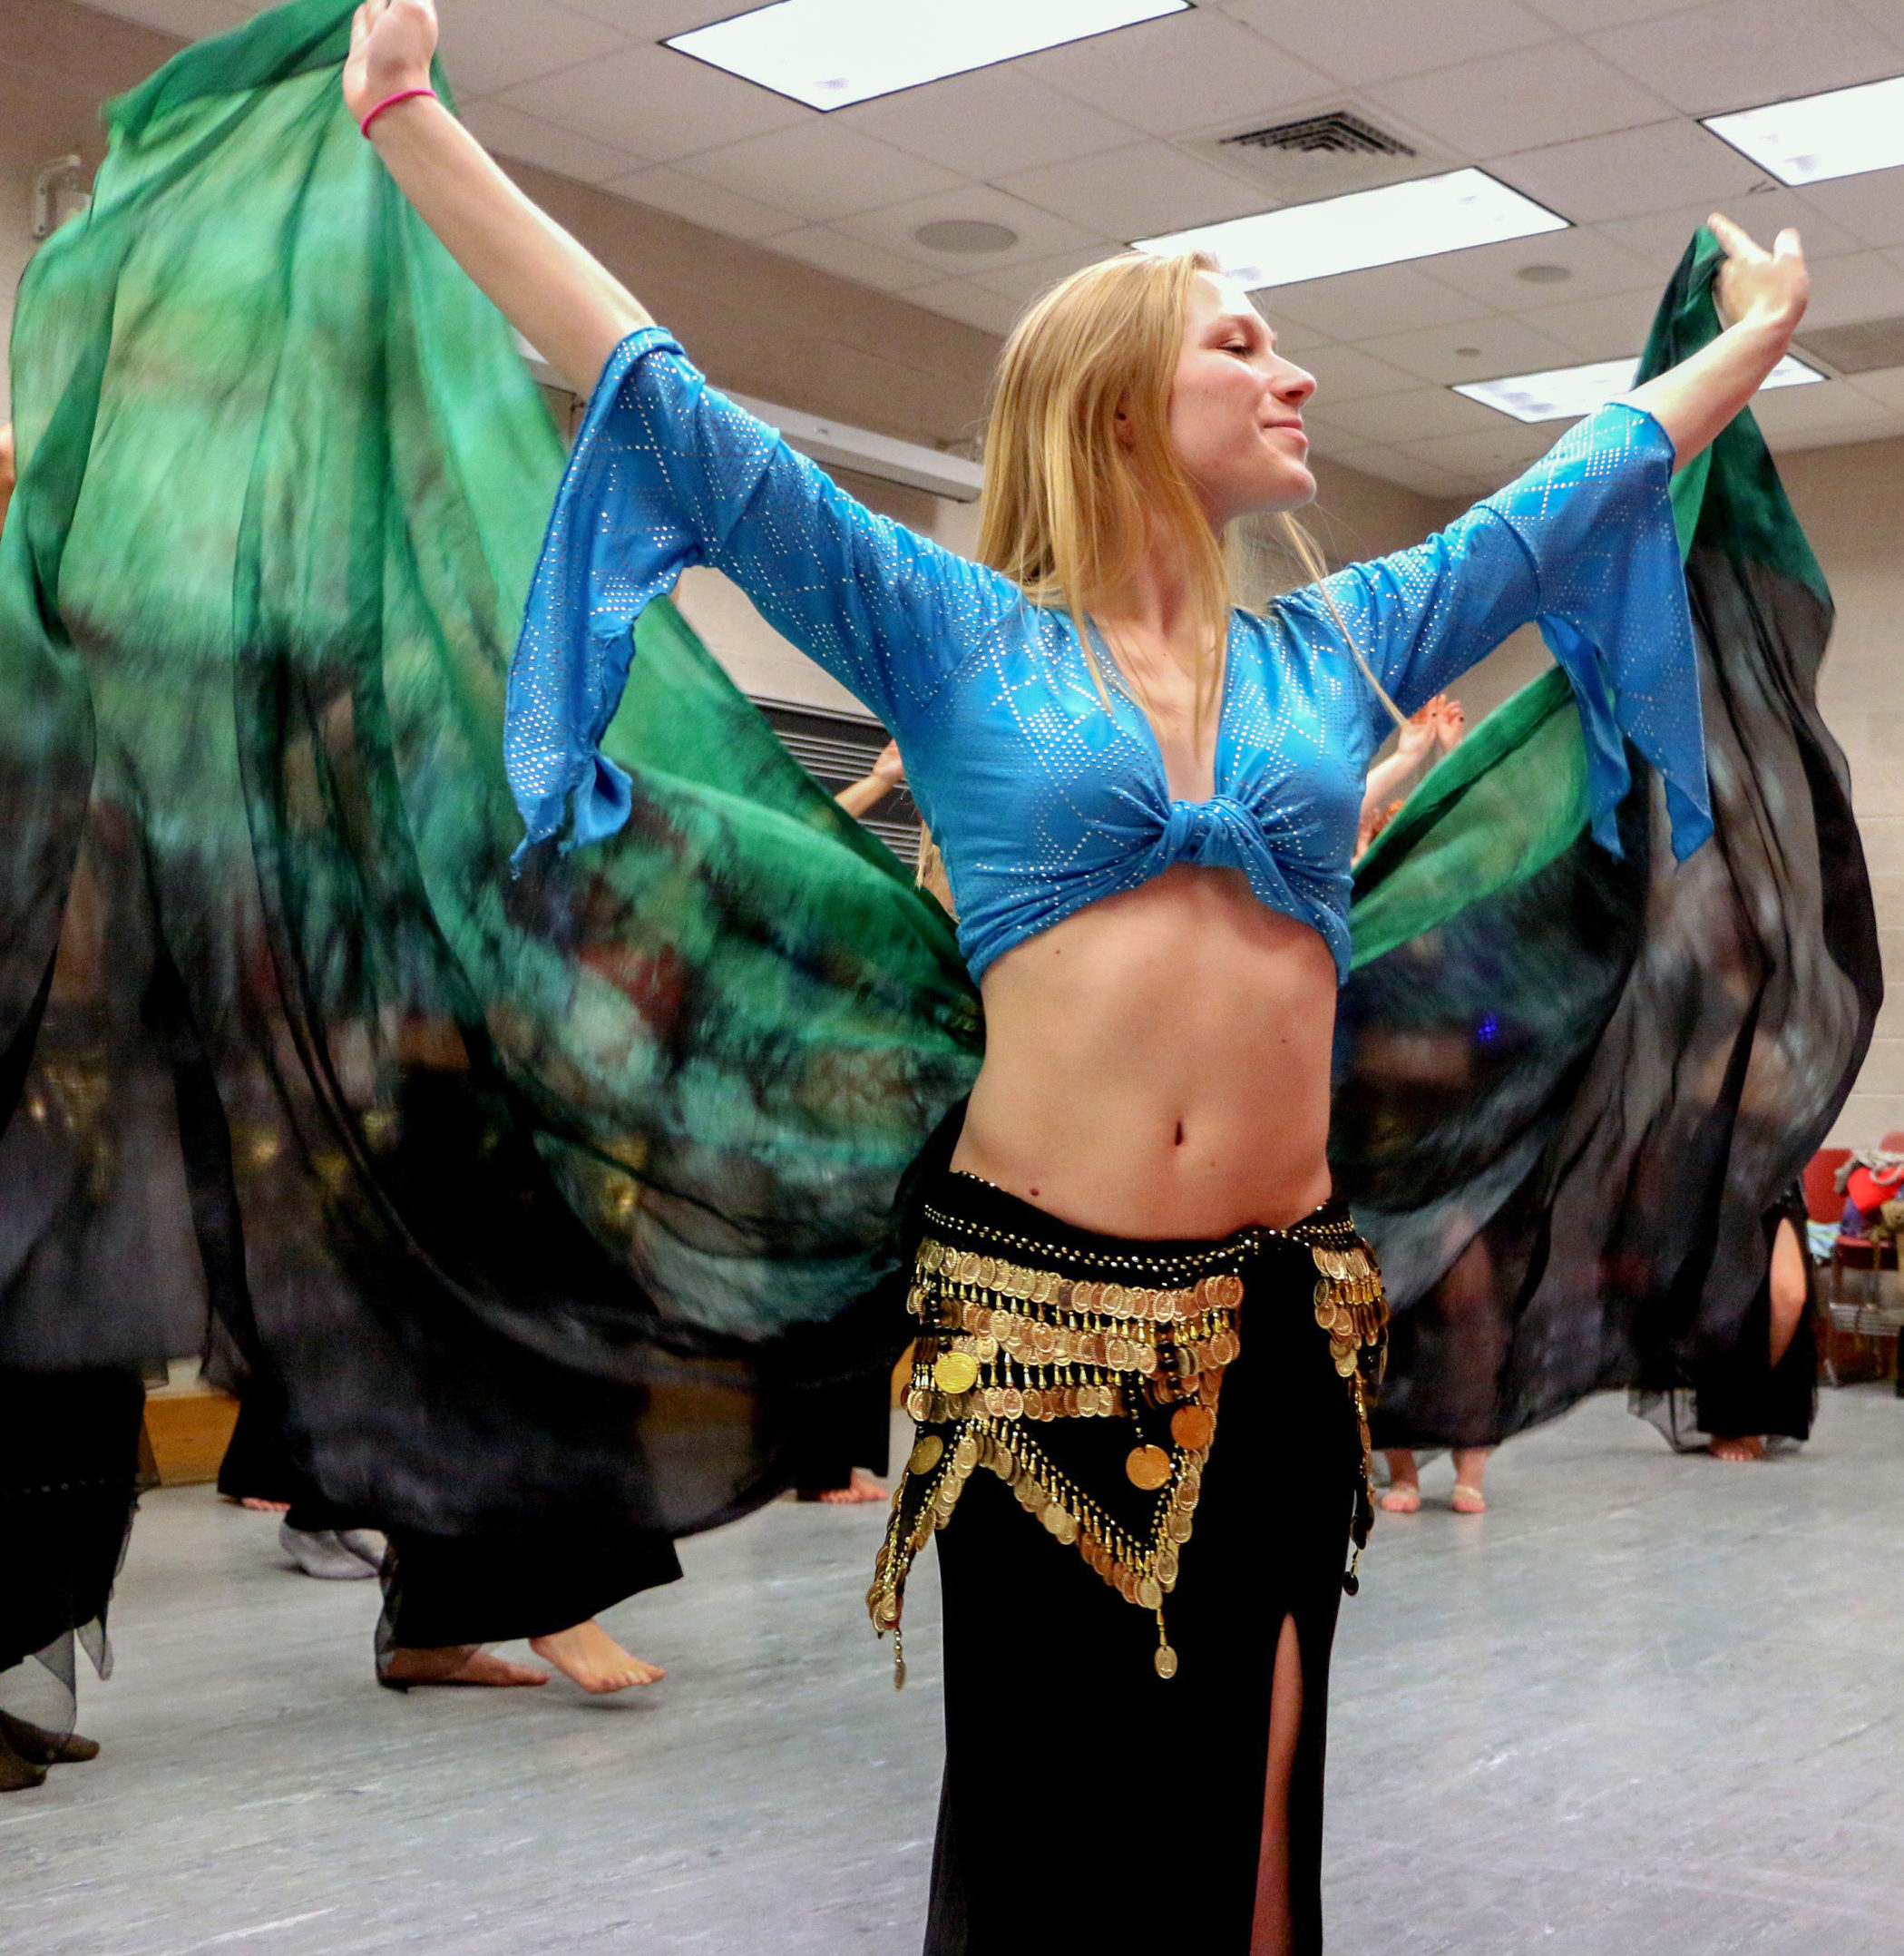 Belly dancer Natalie Seifert, '18, practices her twirls with a flowy shawl on Nov. 7, 2016 at Zoellner Arts Center. Seifert's added accessories helped accentuate her dance solo. (Lauryn Ragone/B&W Staff)